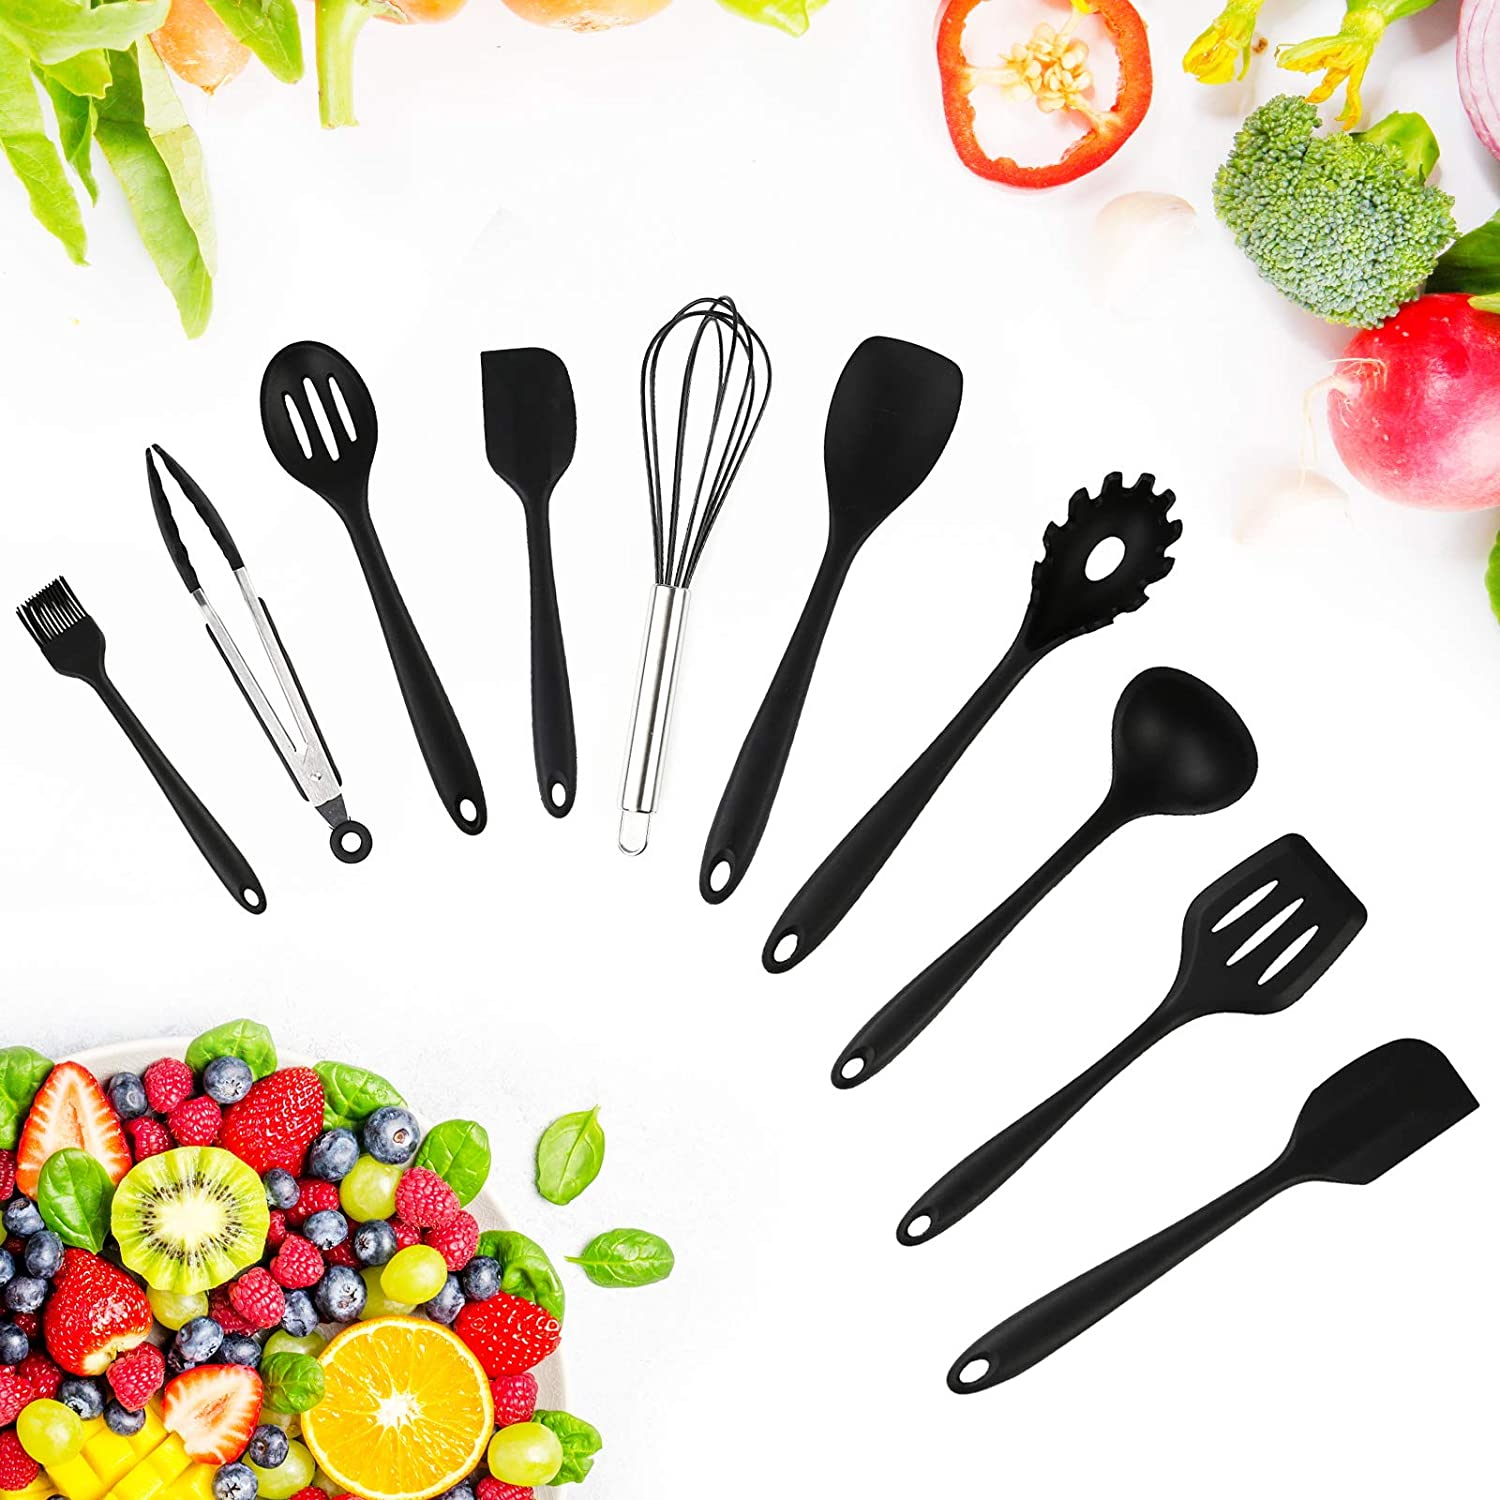 Silicone Now free shipping Cooking Max 58% OFF Utensil Set Kitchen Resistant Heat